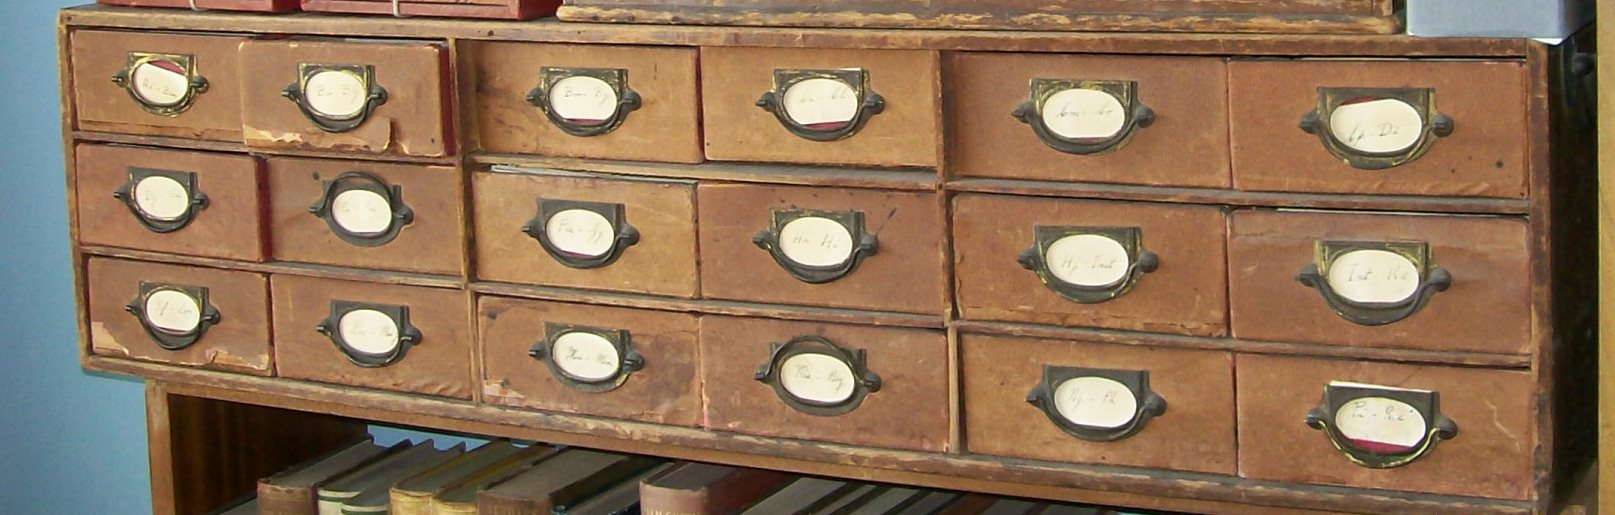 Part of Alfred Marshall card catalogue